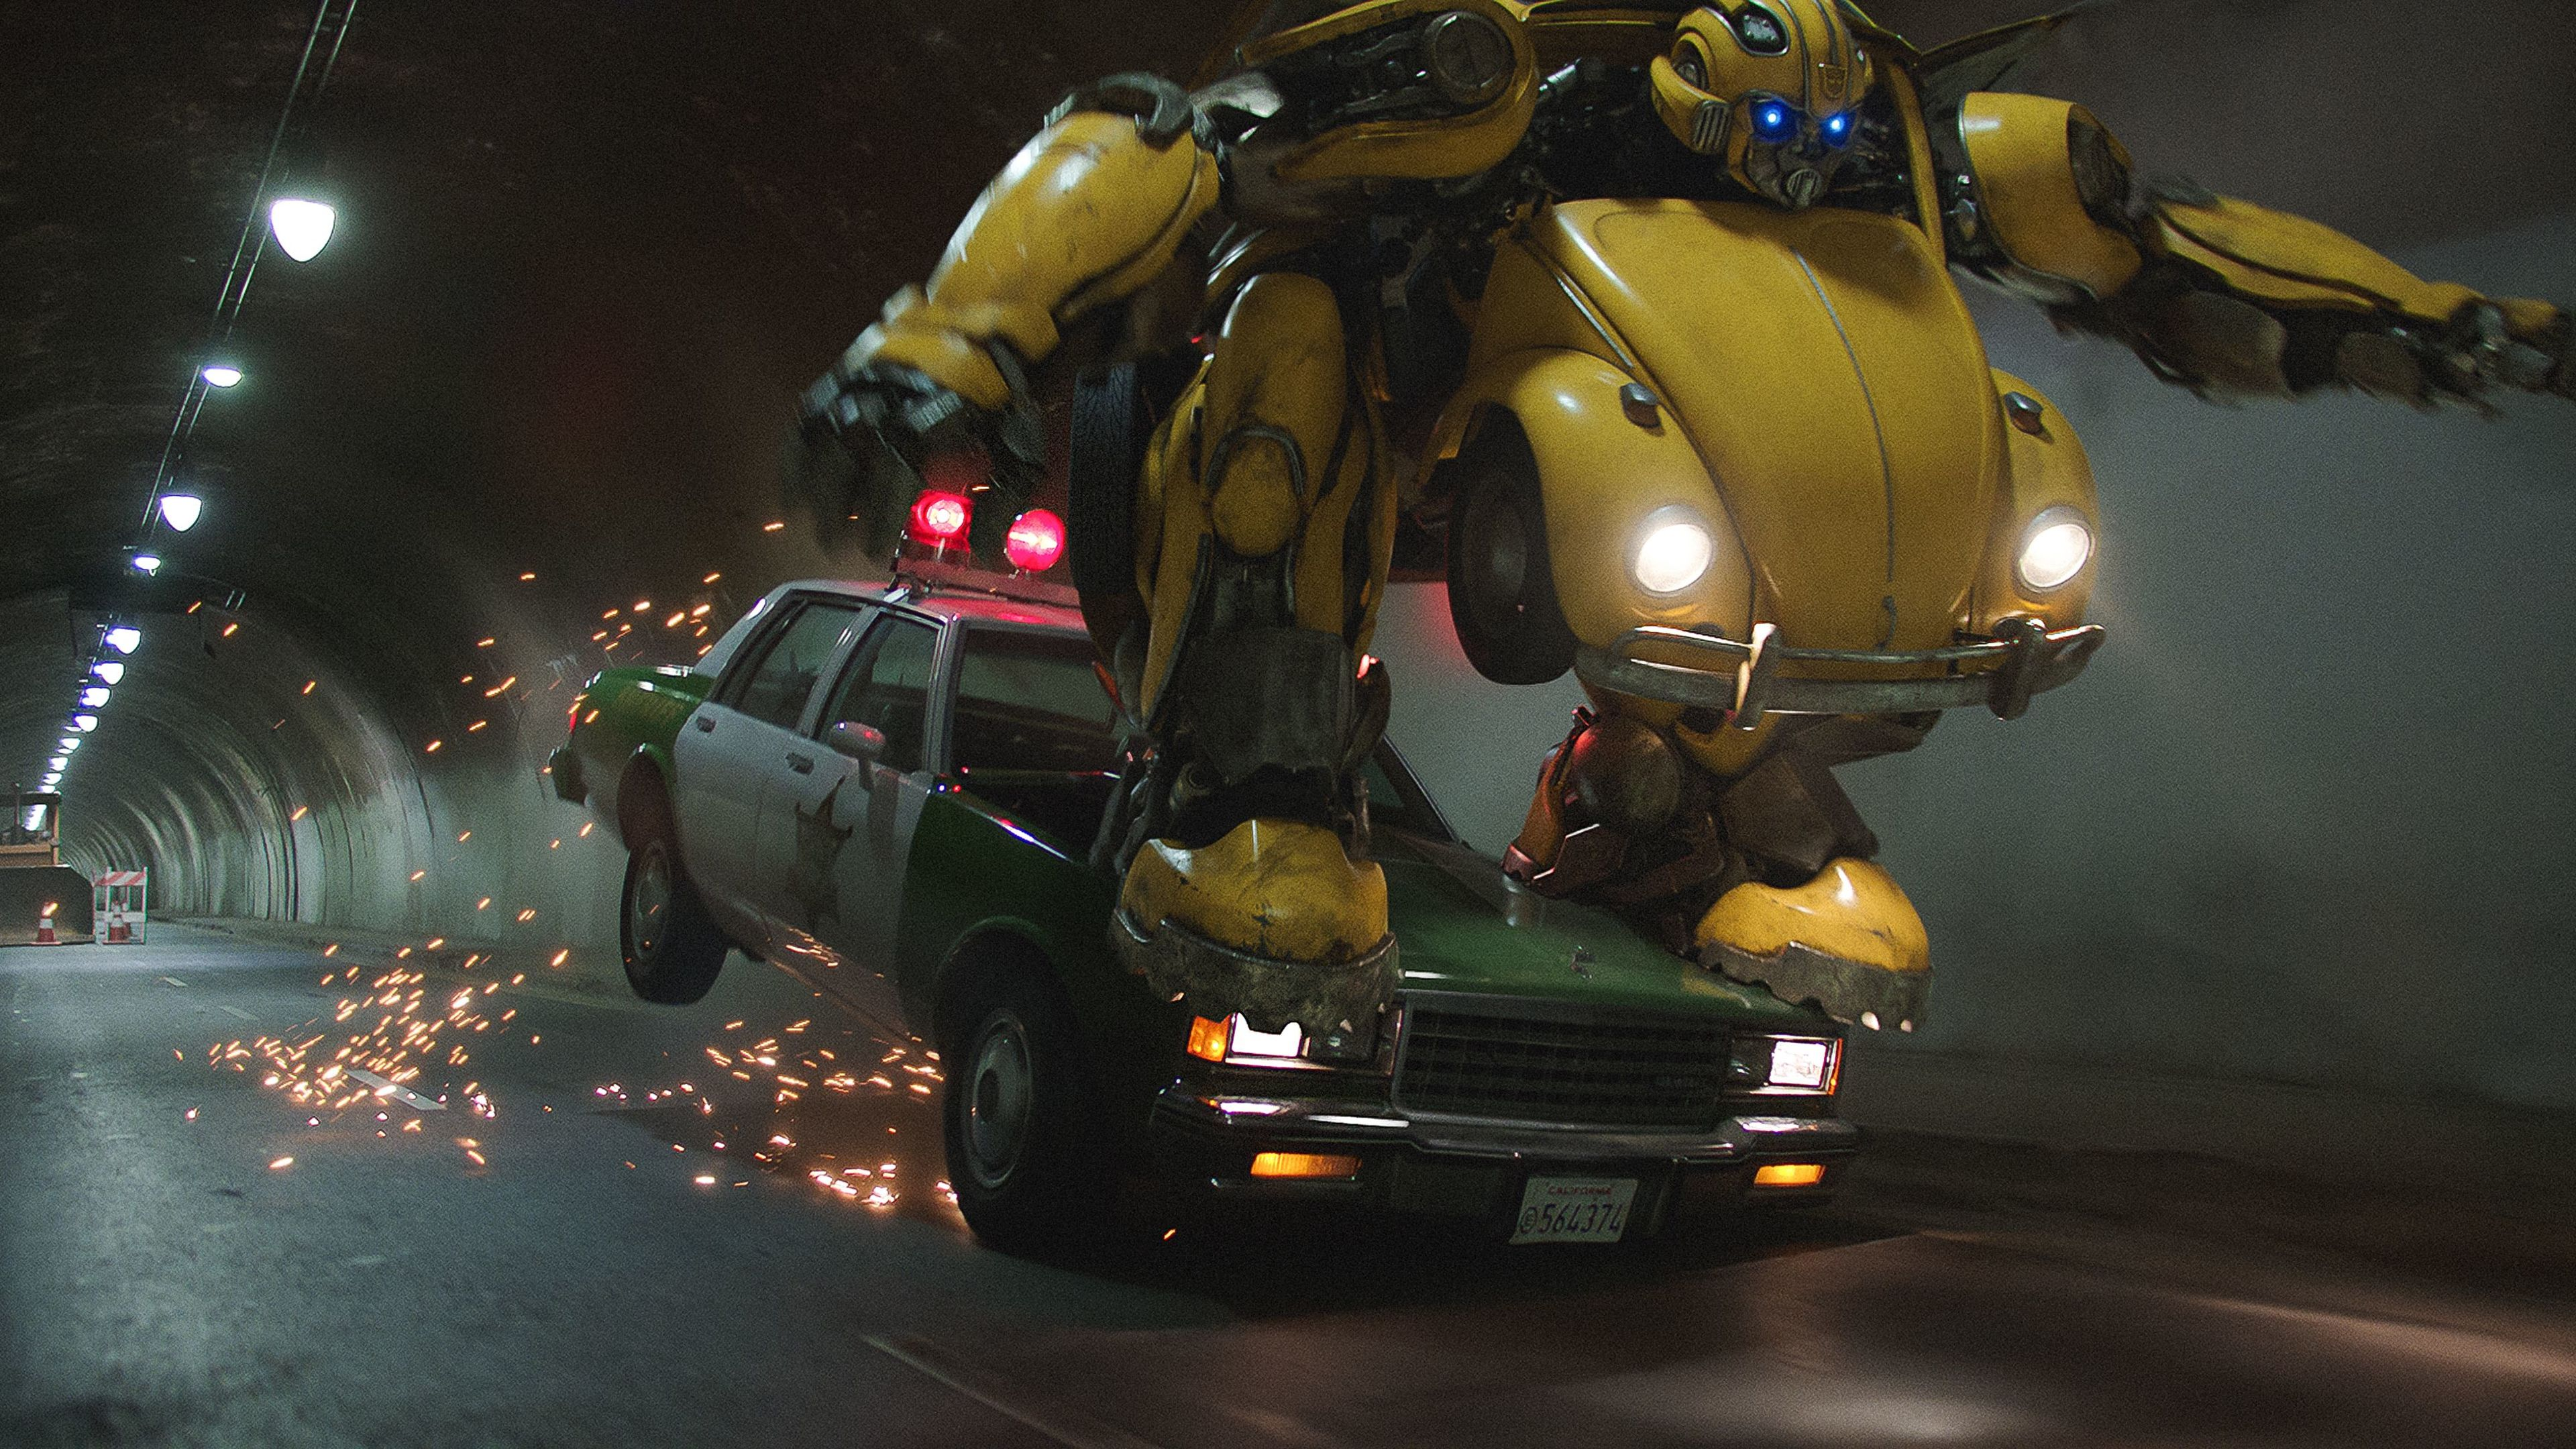 bumblebee movie 2018 4k new 1541719513 - Bumblebee Movie 2018 4k New - movies wallpapers, hd-wallpapers, bumblebee wallpapers, 4k-wallpapers, 2018-movies-wallpapers